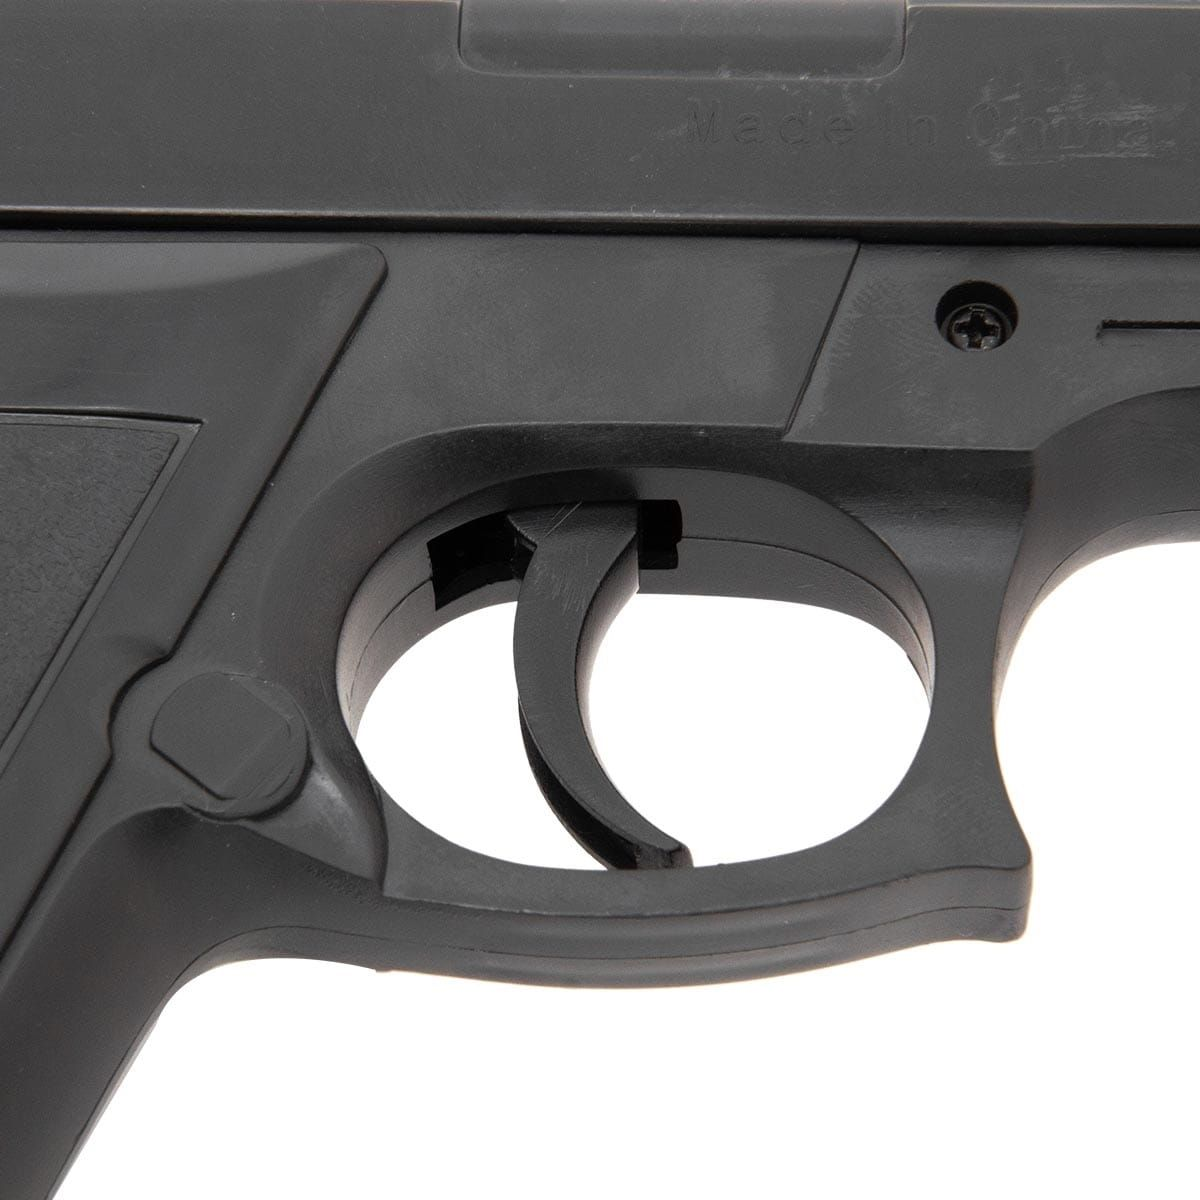 PISTOLA AIRSOFT ROSSI MOLA PP VG P99 6MM